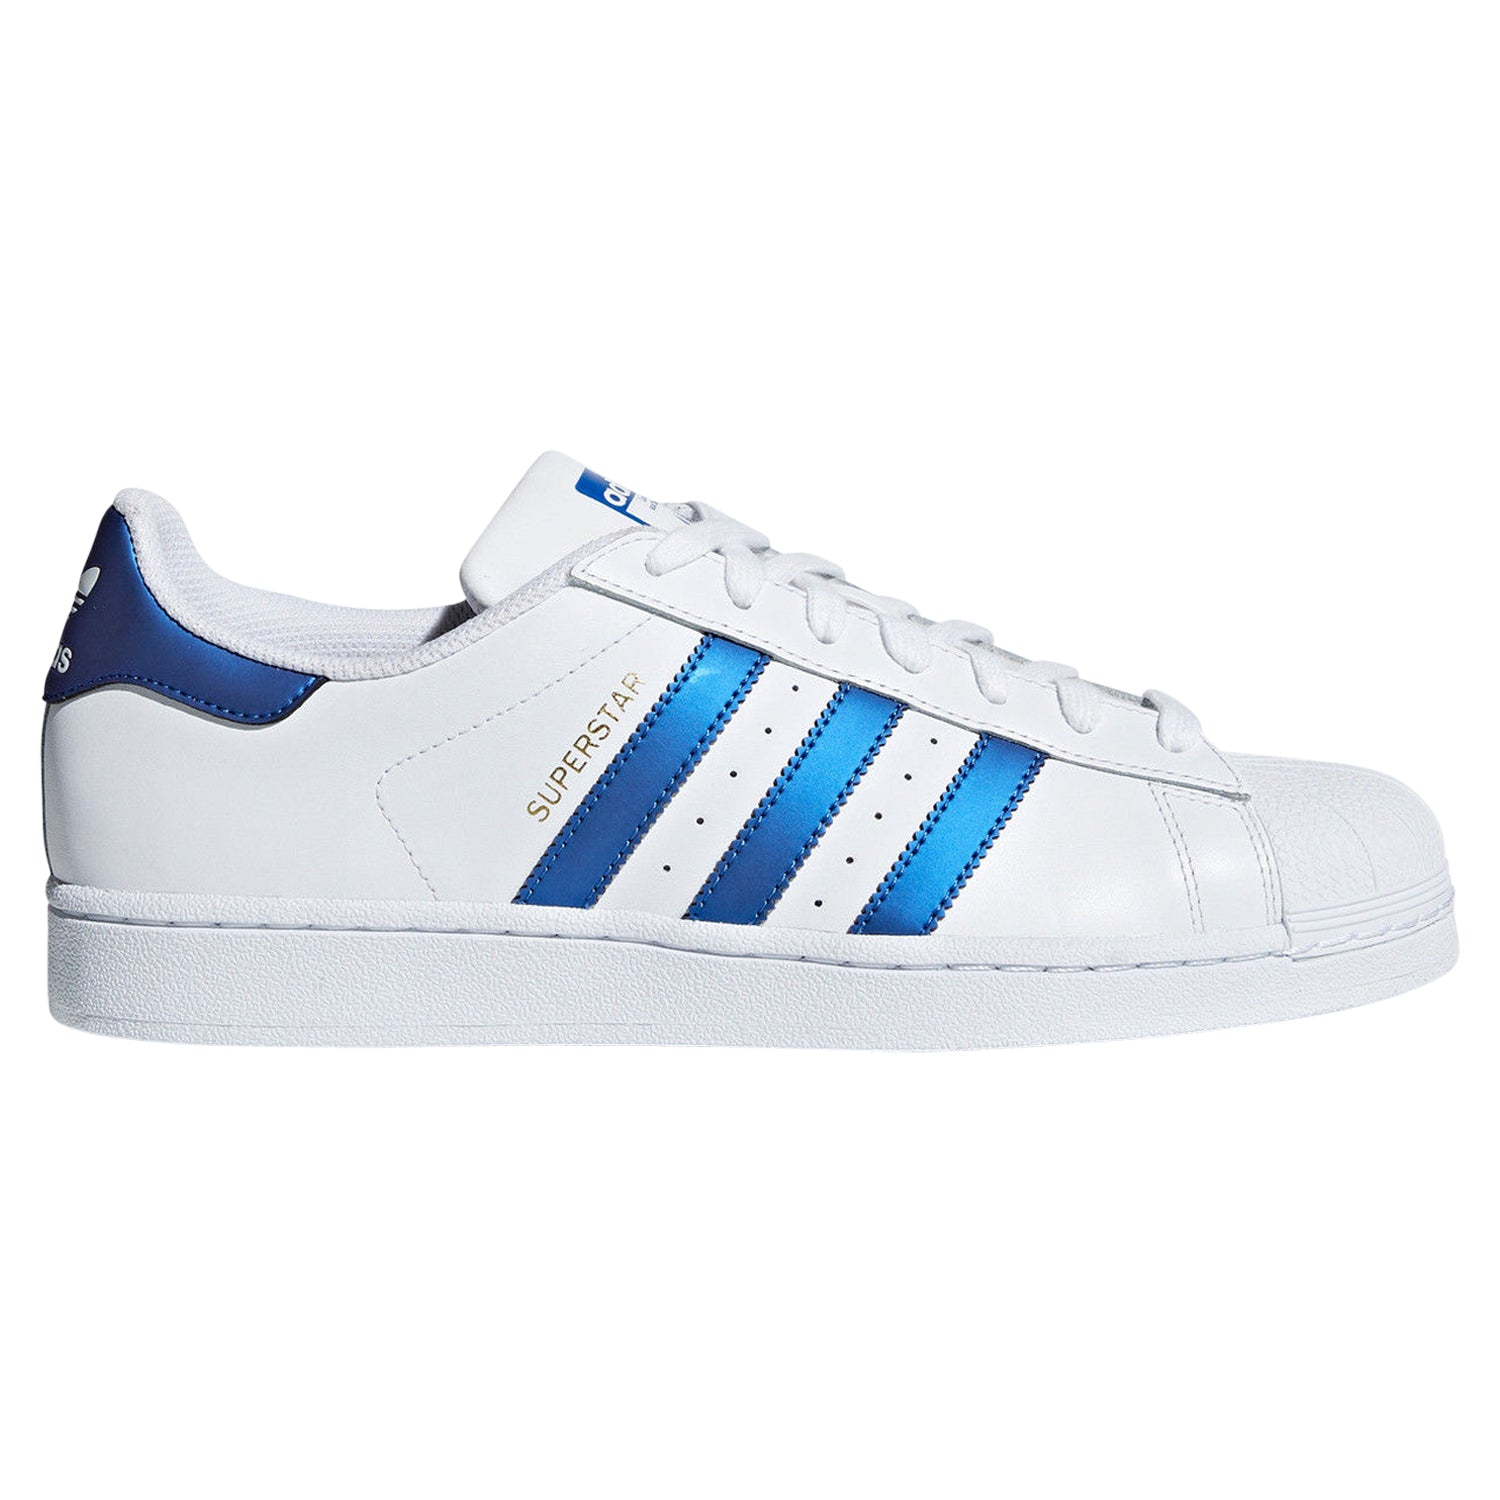 great fit 3284f eacdd adidas Originals Men's Superstar Leather Trainers - White